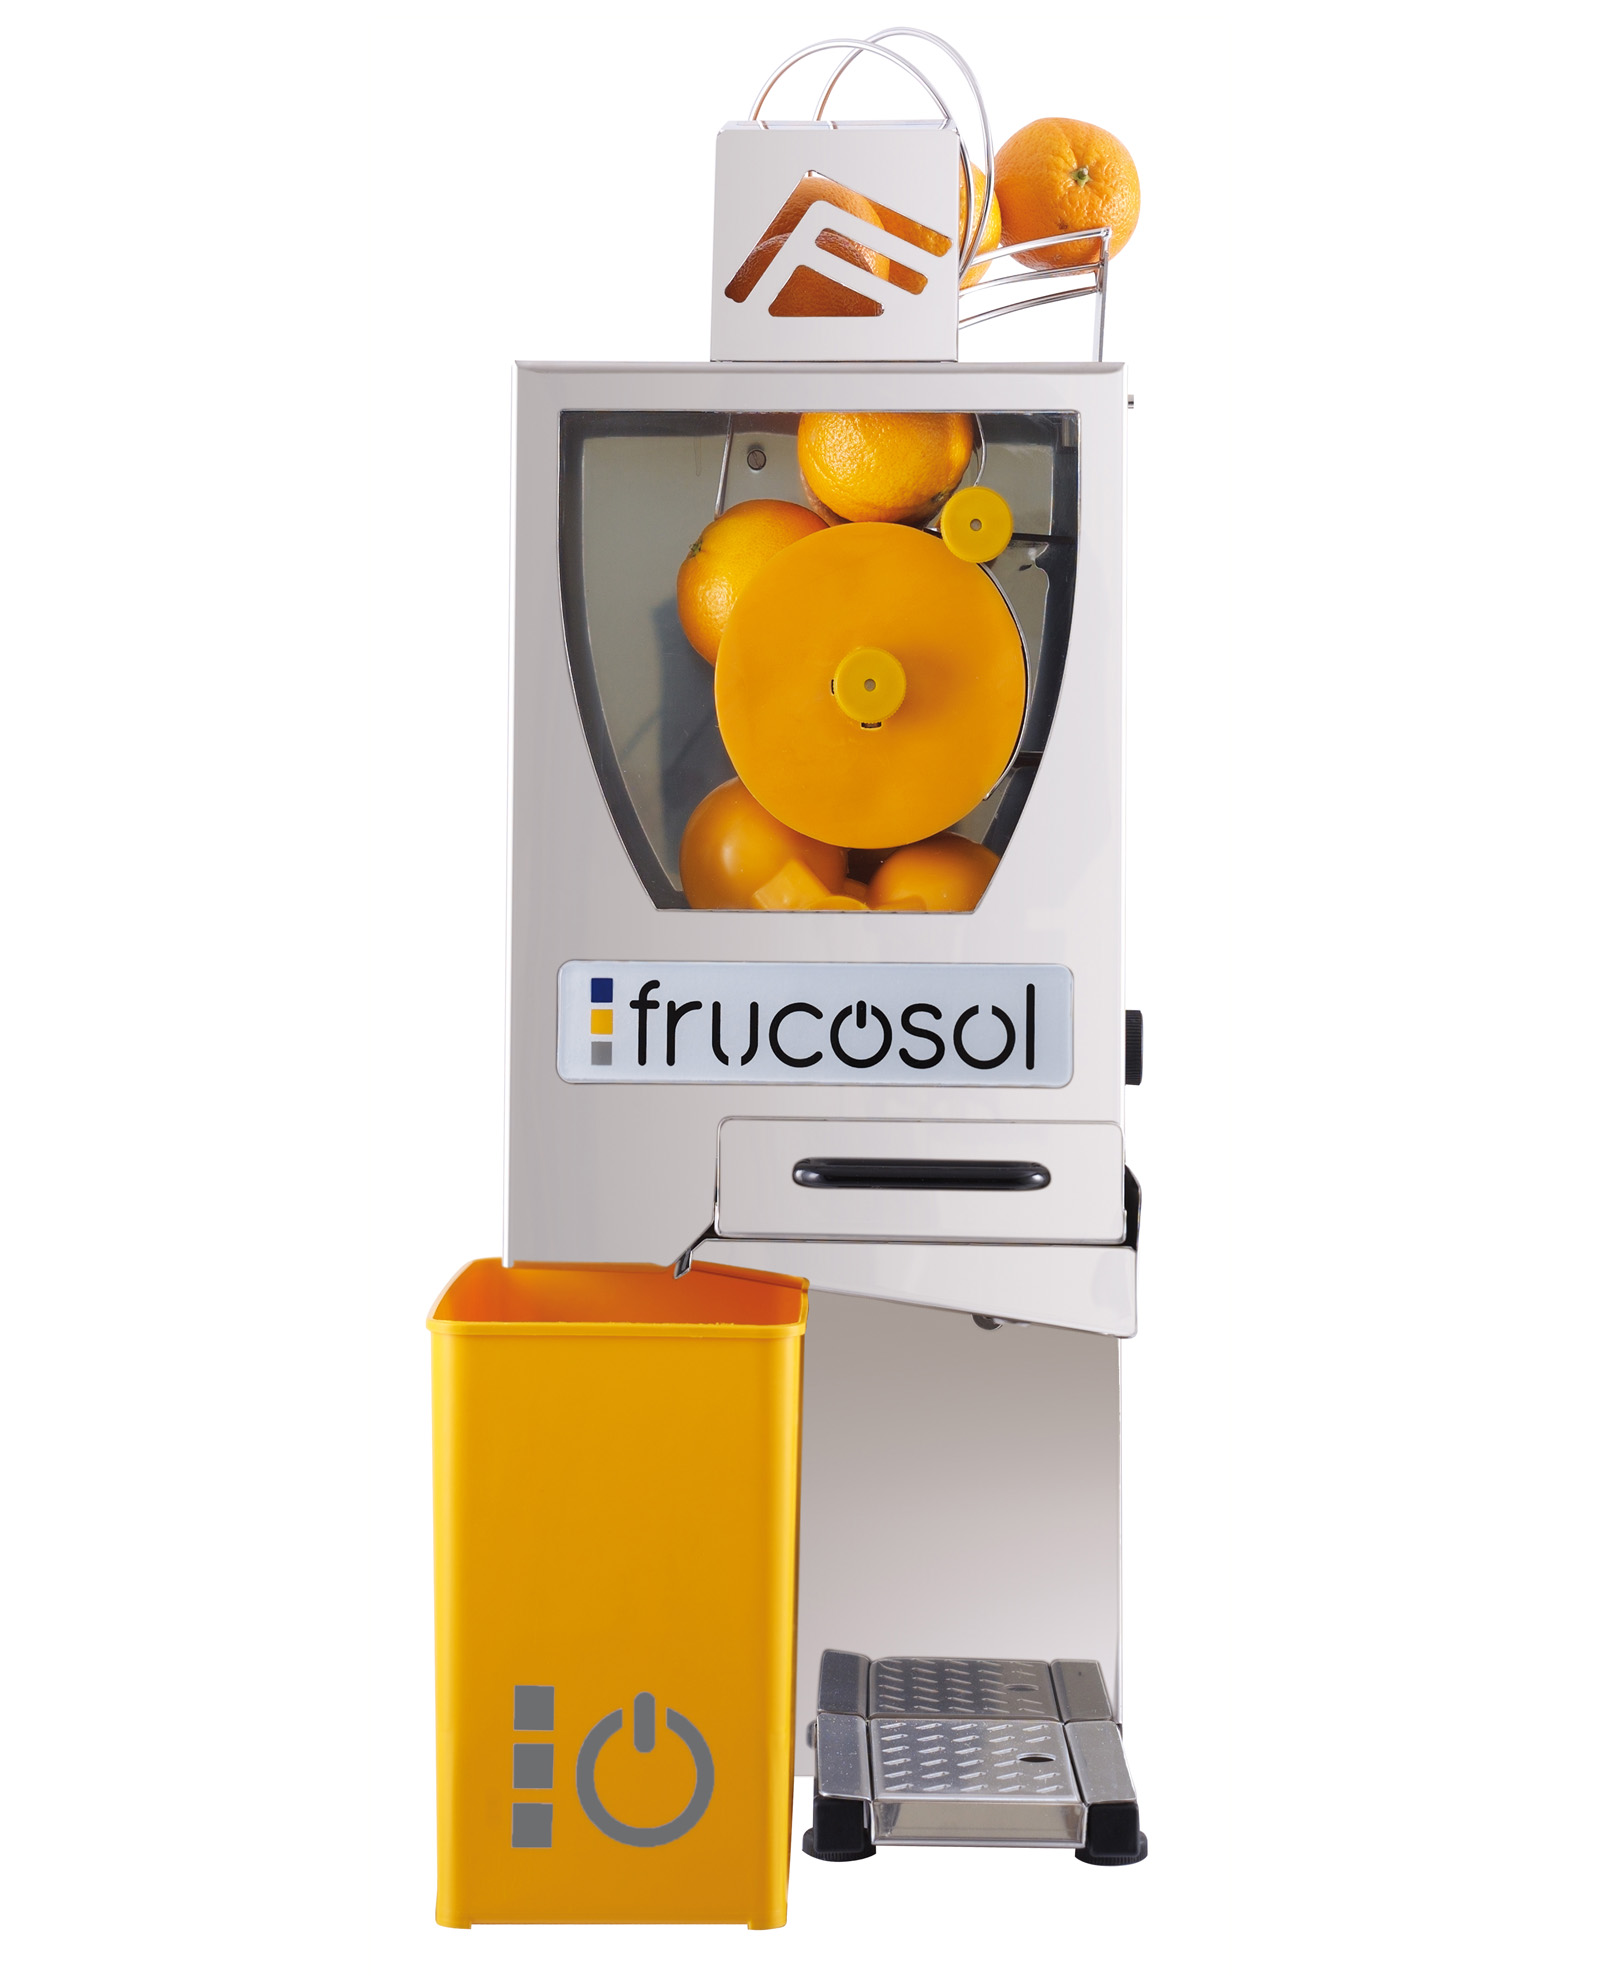 F 50 Automatic Juicer from Frucosol UK